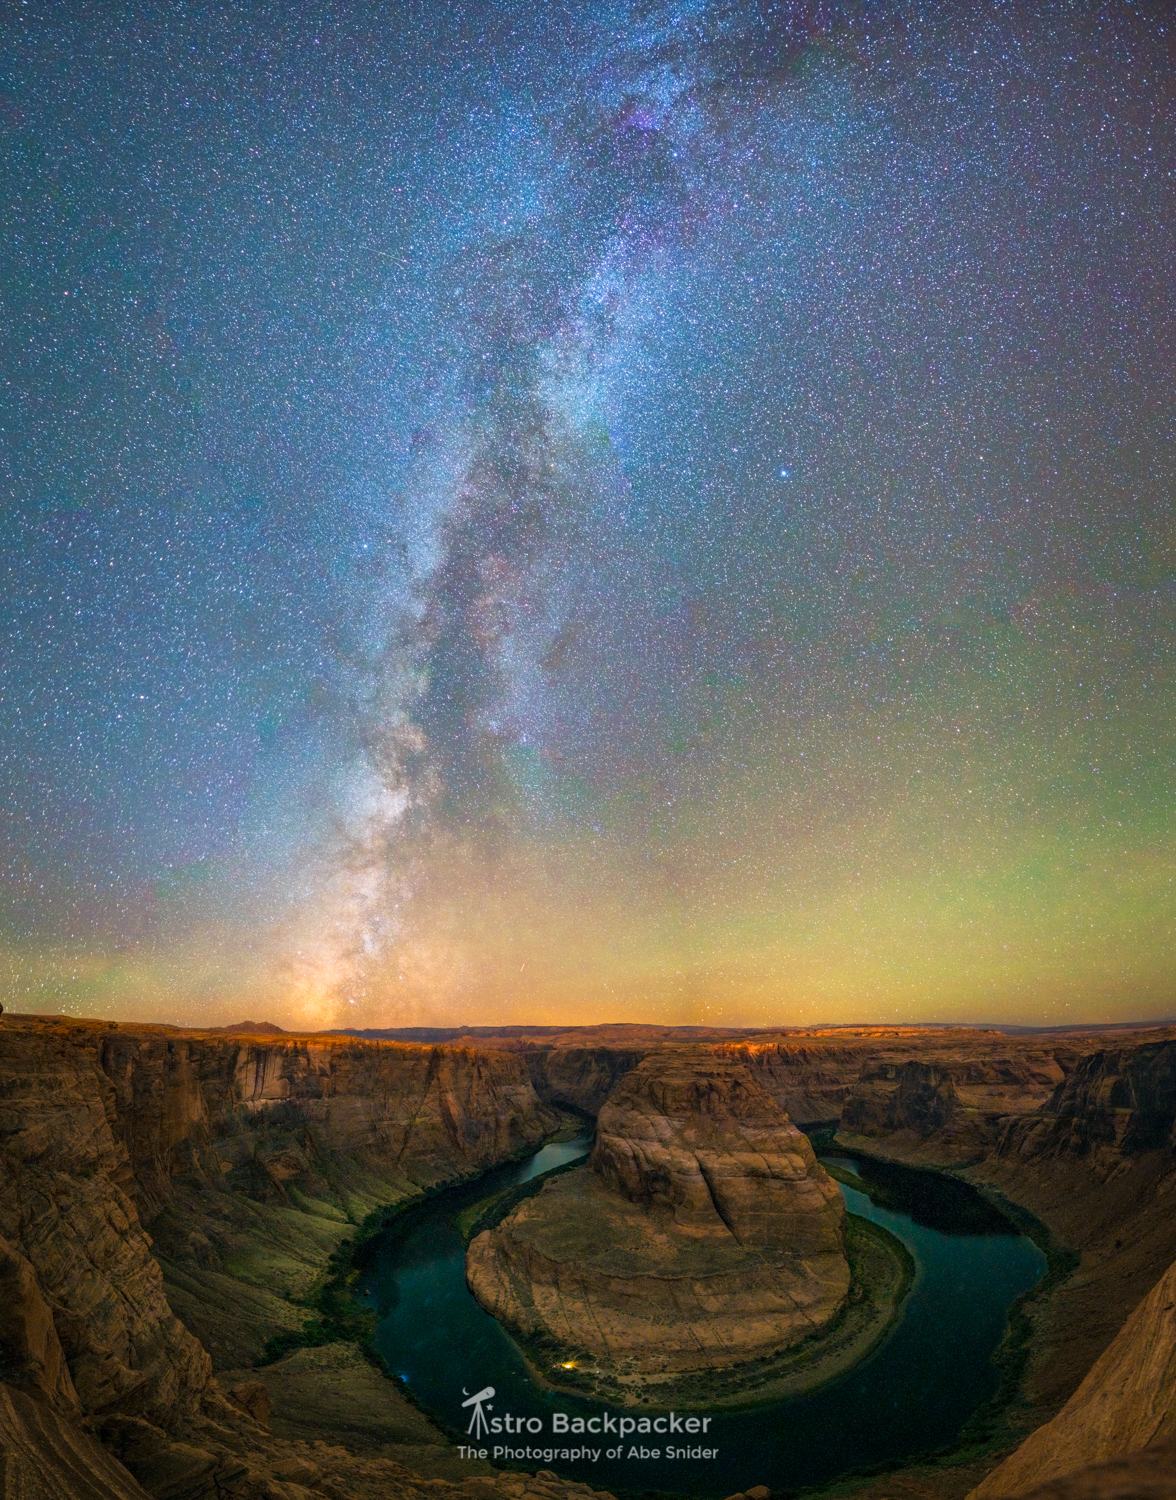 My last Milky Way image for the season at Horseshoe Bend.